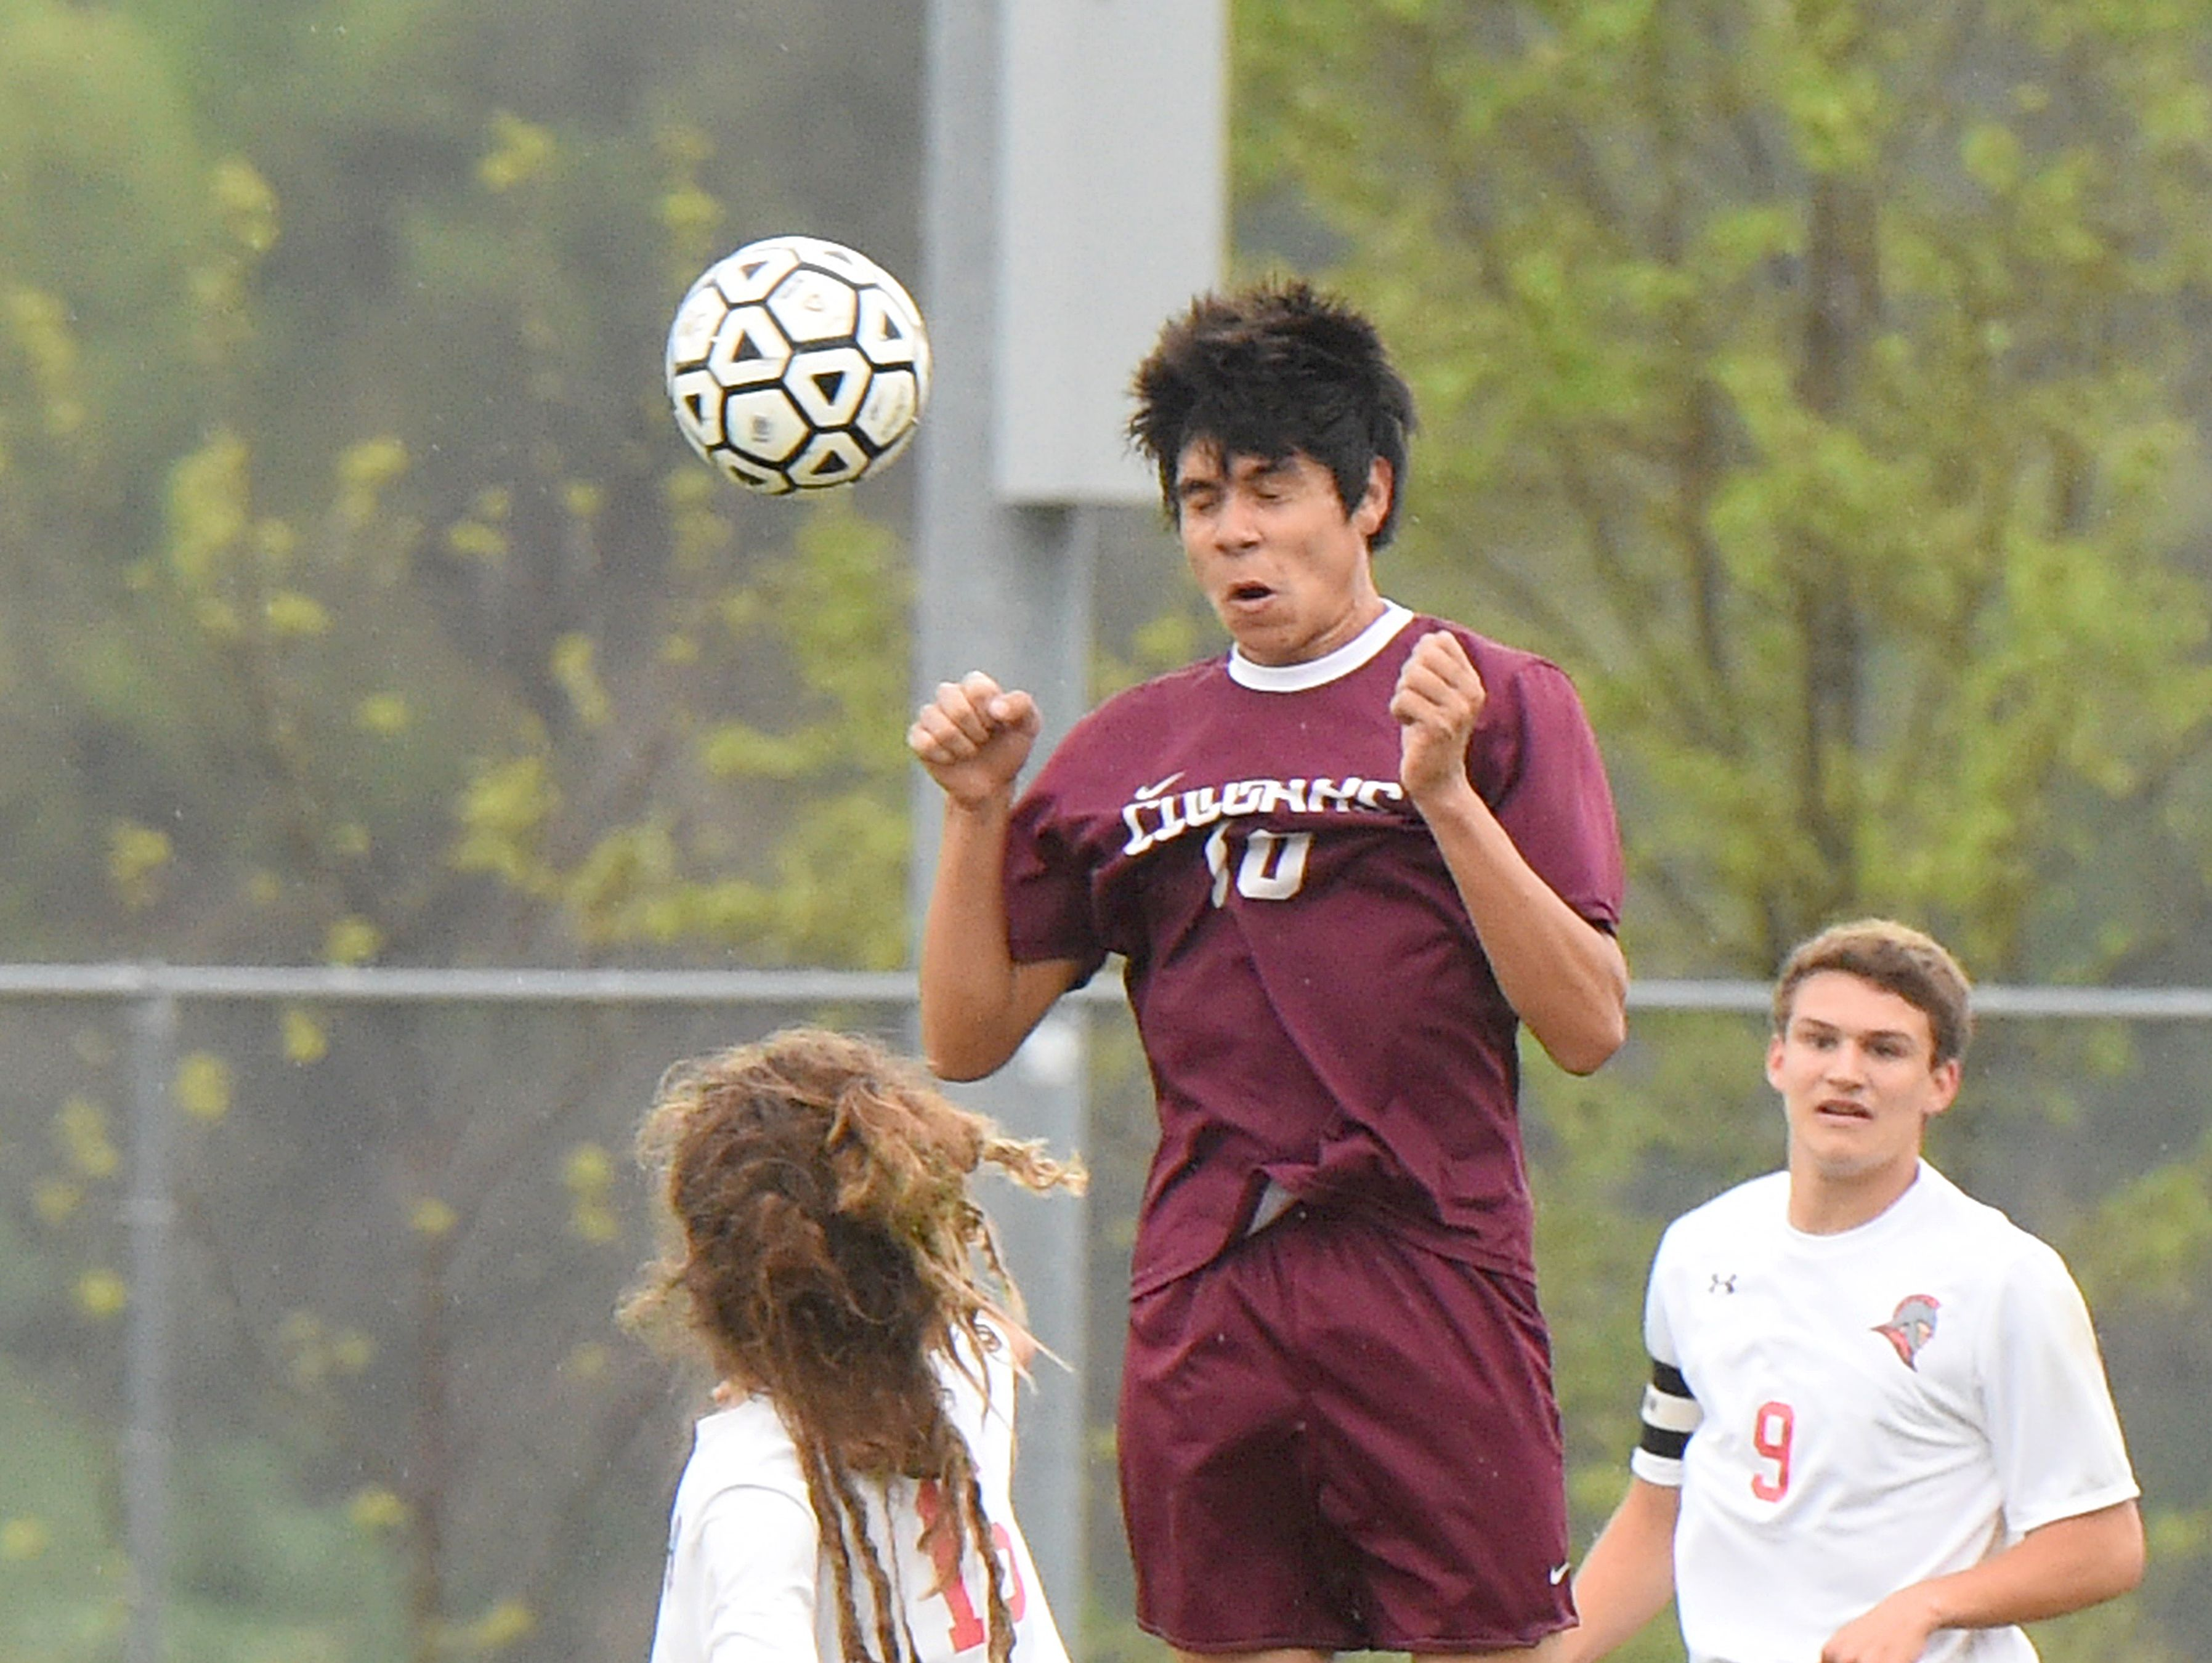 Stuarts Draft's DeyShon Hartley heads the ball during a soccer game played in Greenville on Friday, April 22, 2016.